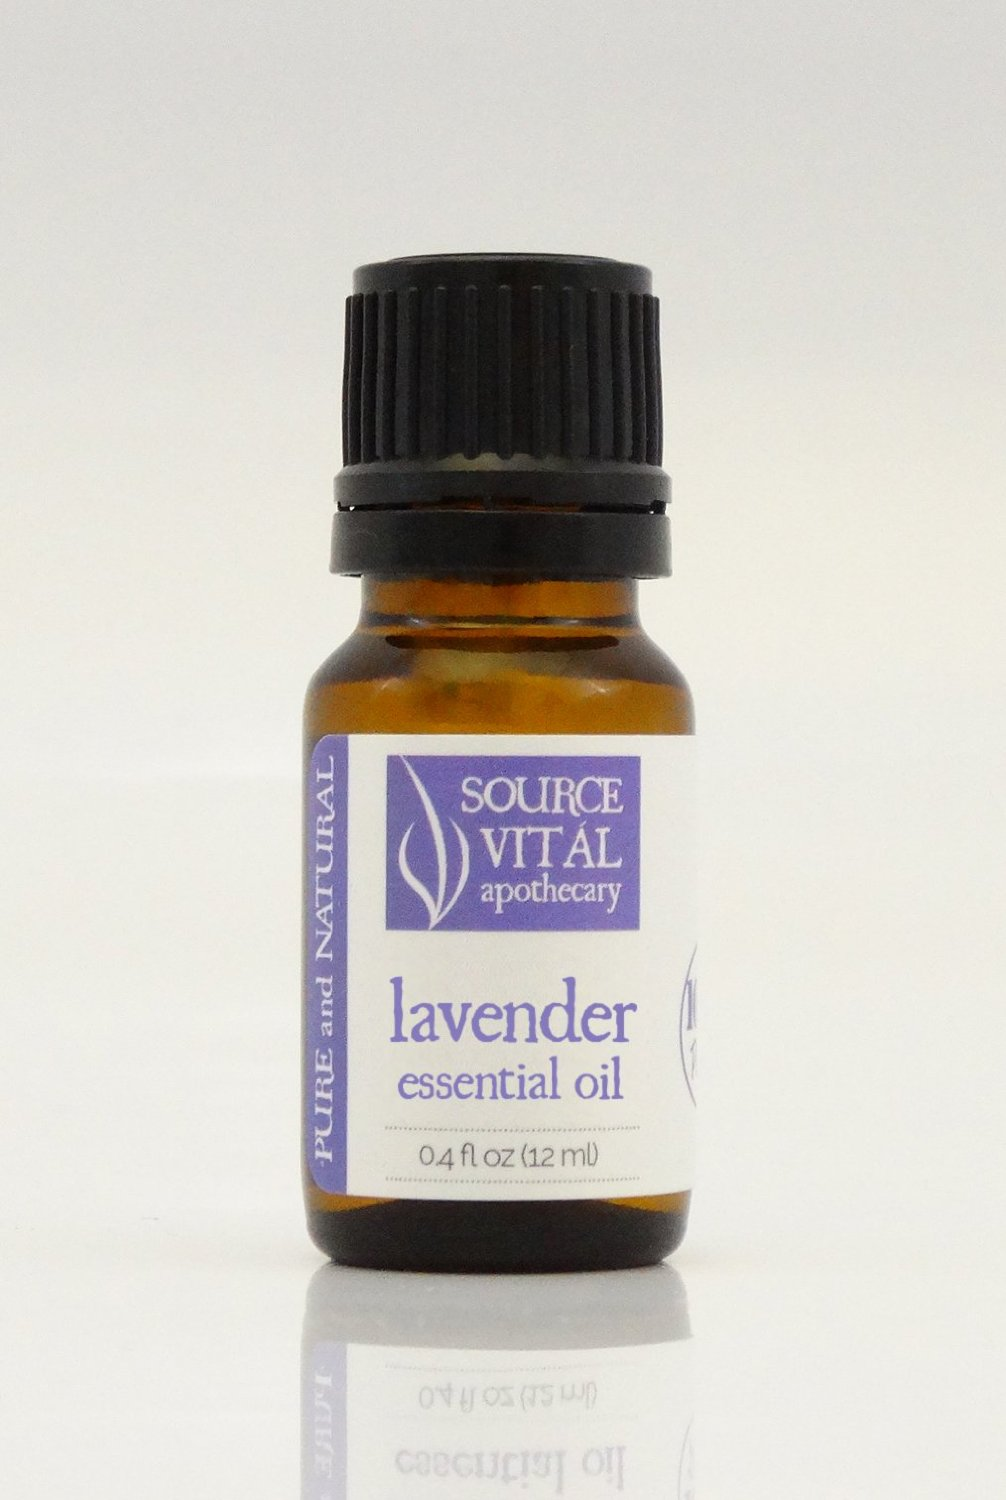 100% Pure Lavender Essential Oil (Lavandula Angustifolia) by Source Vitál Apothecary (.4 fl oz. - 10 ml)